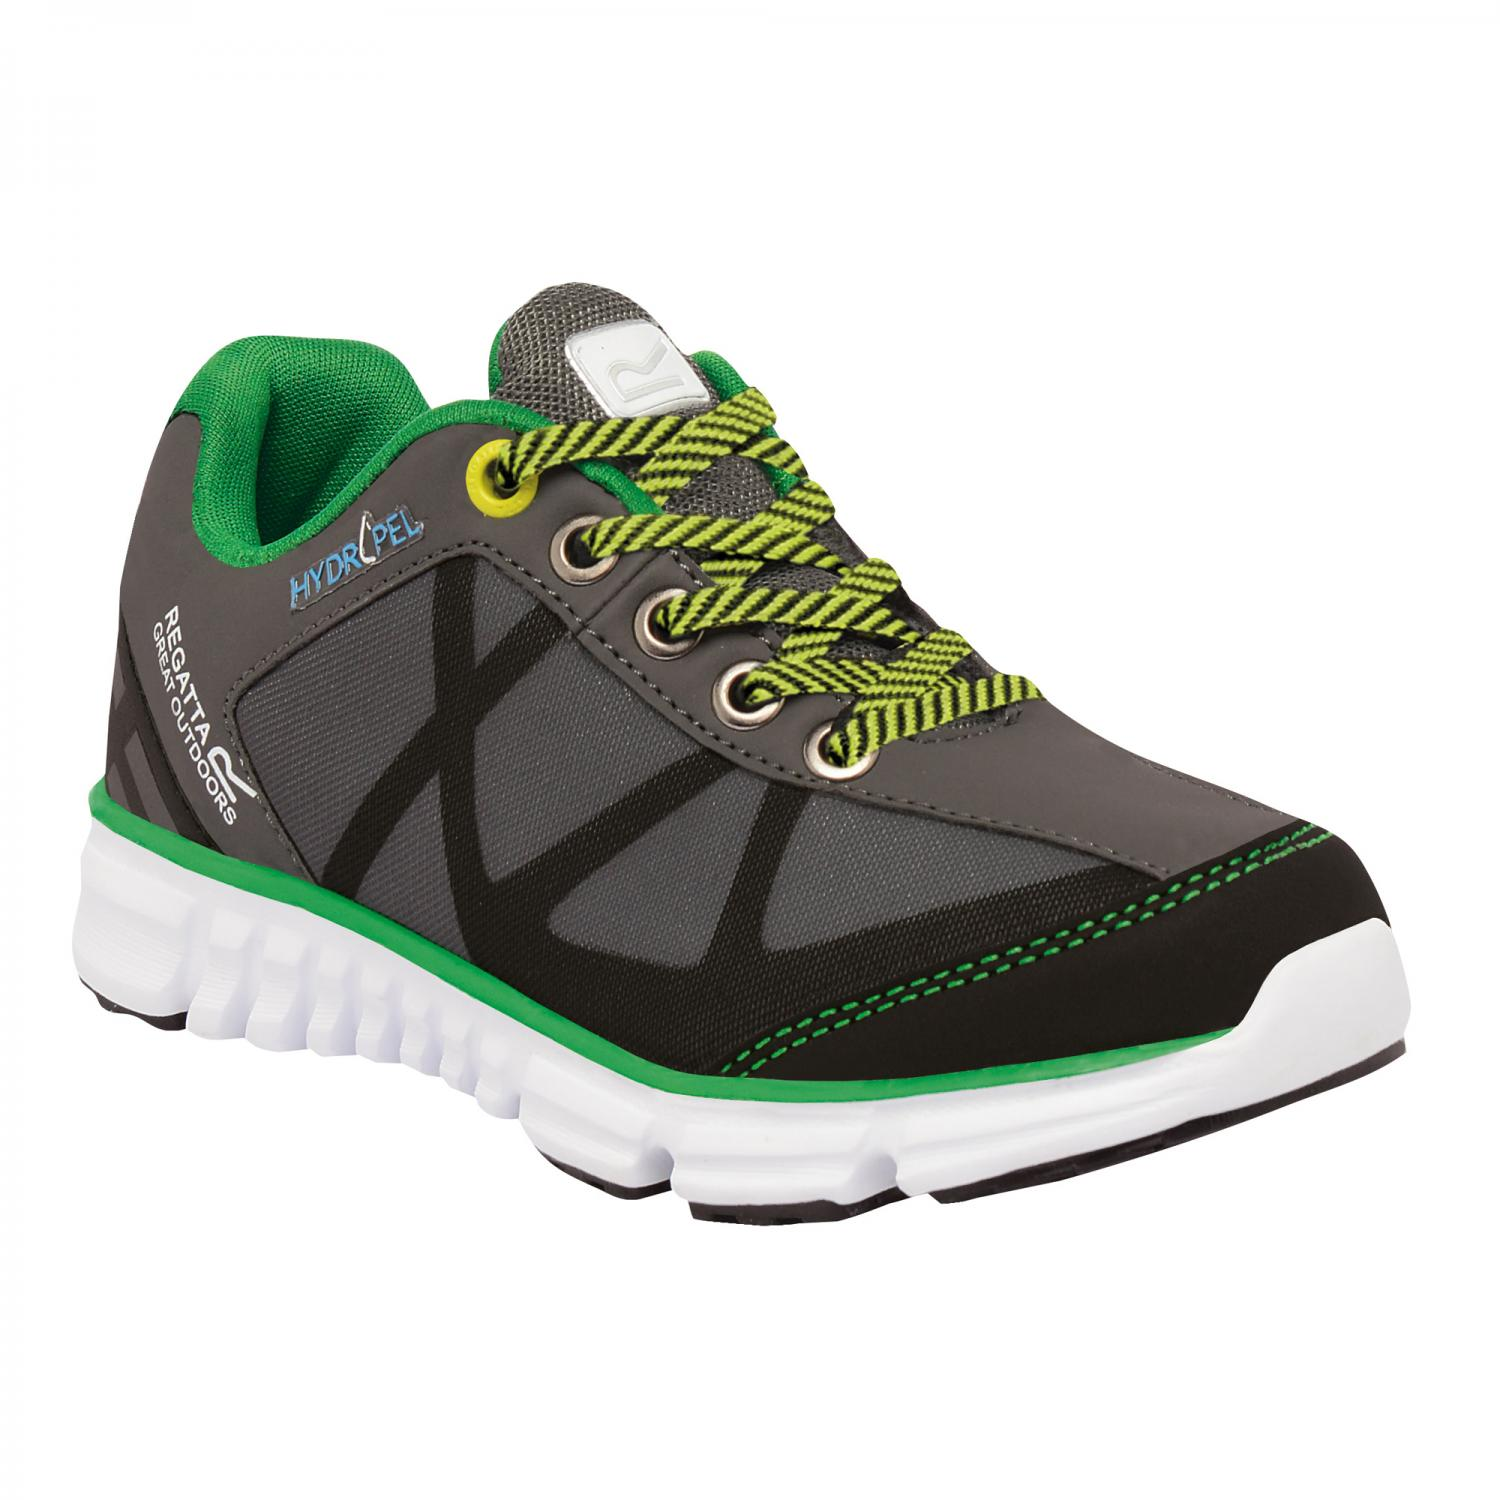 Hyper-Trail Low Junior Shoe Charcoal Green